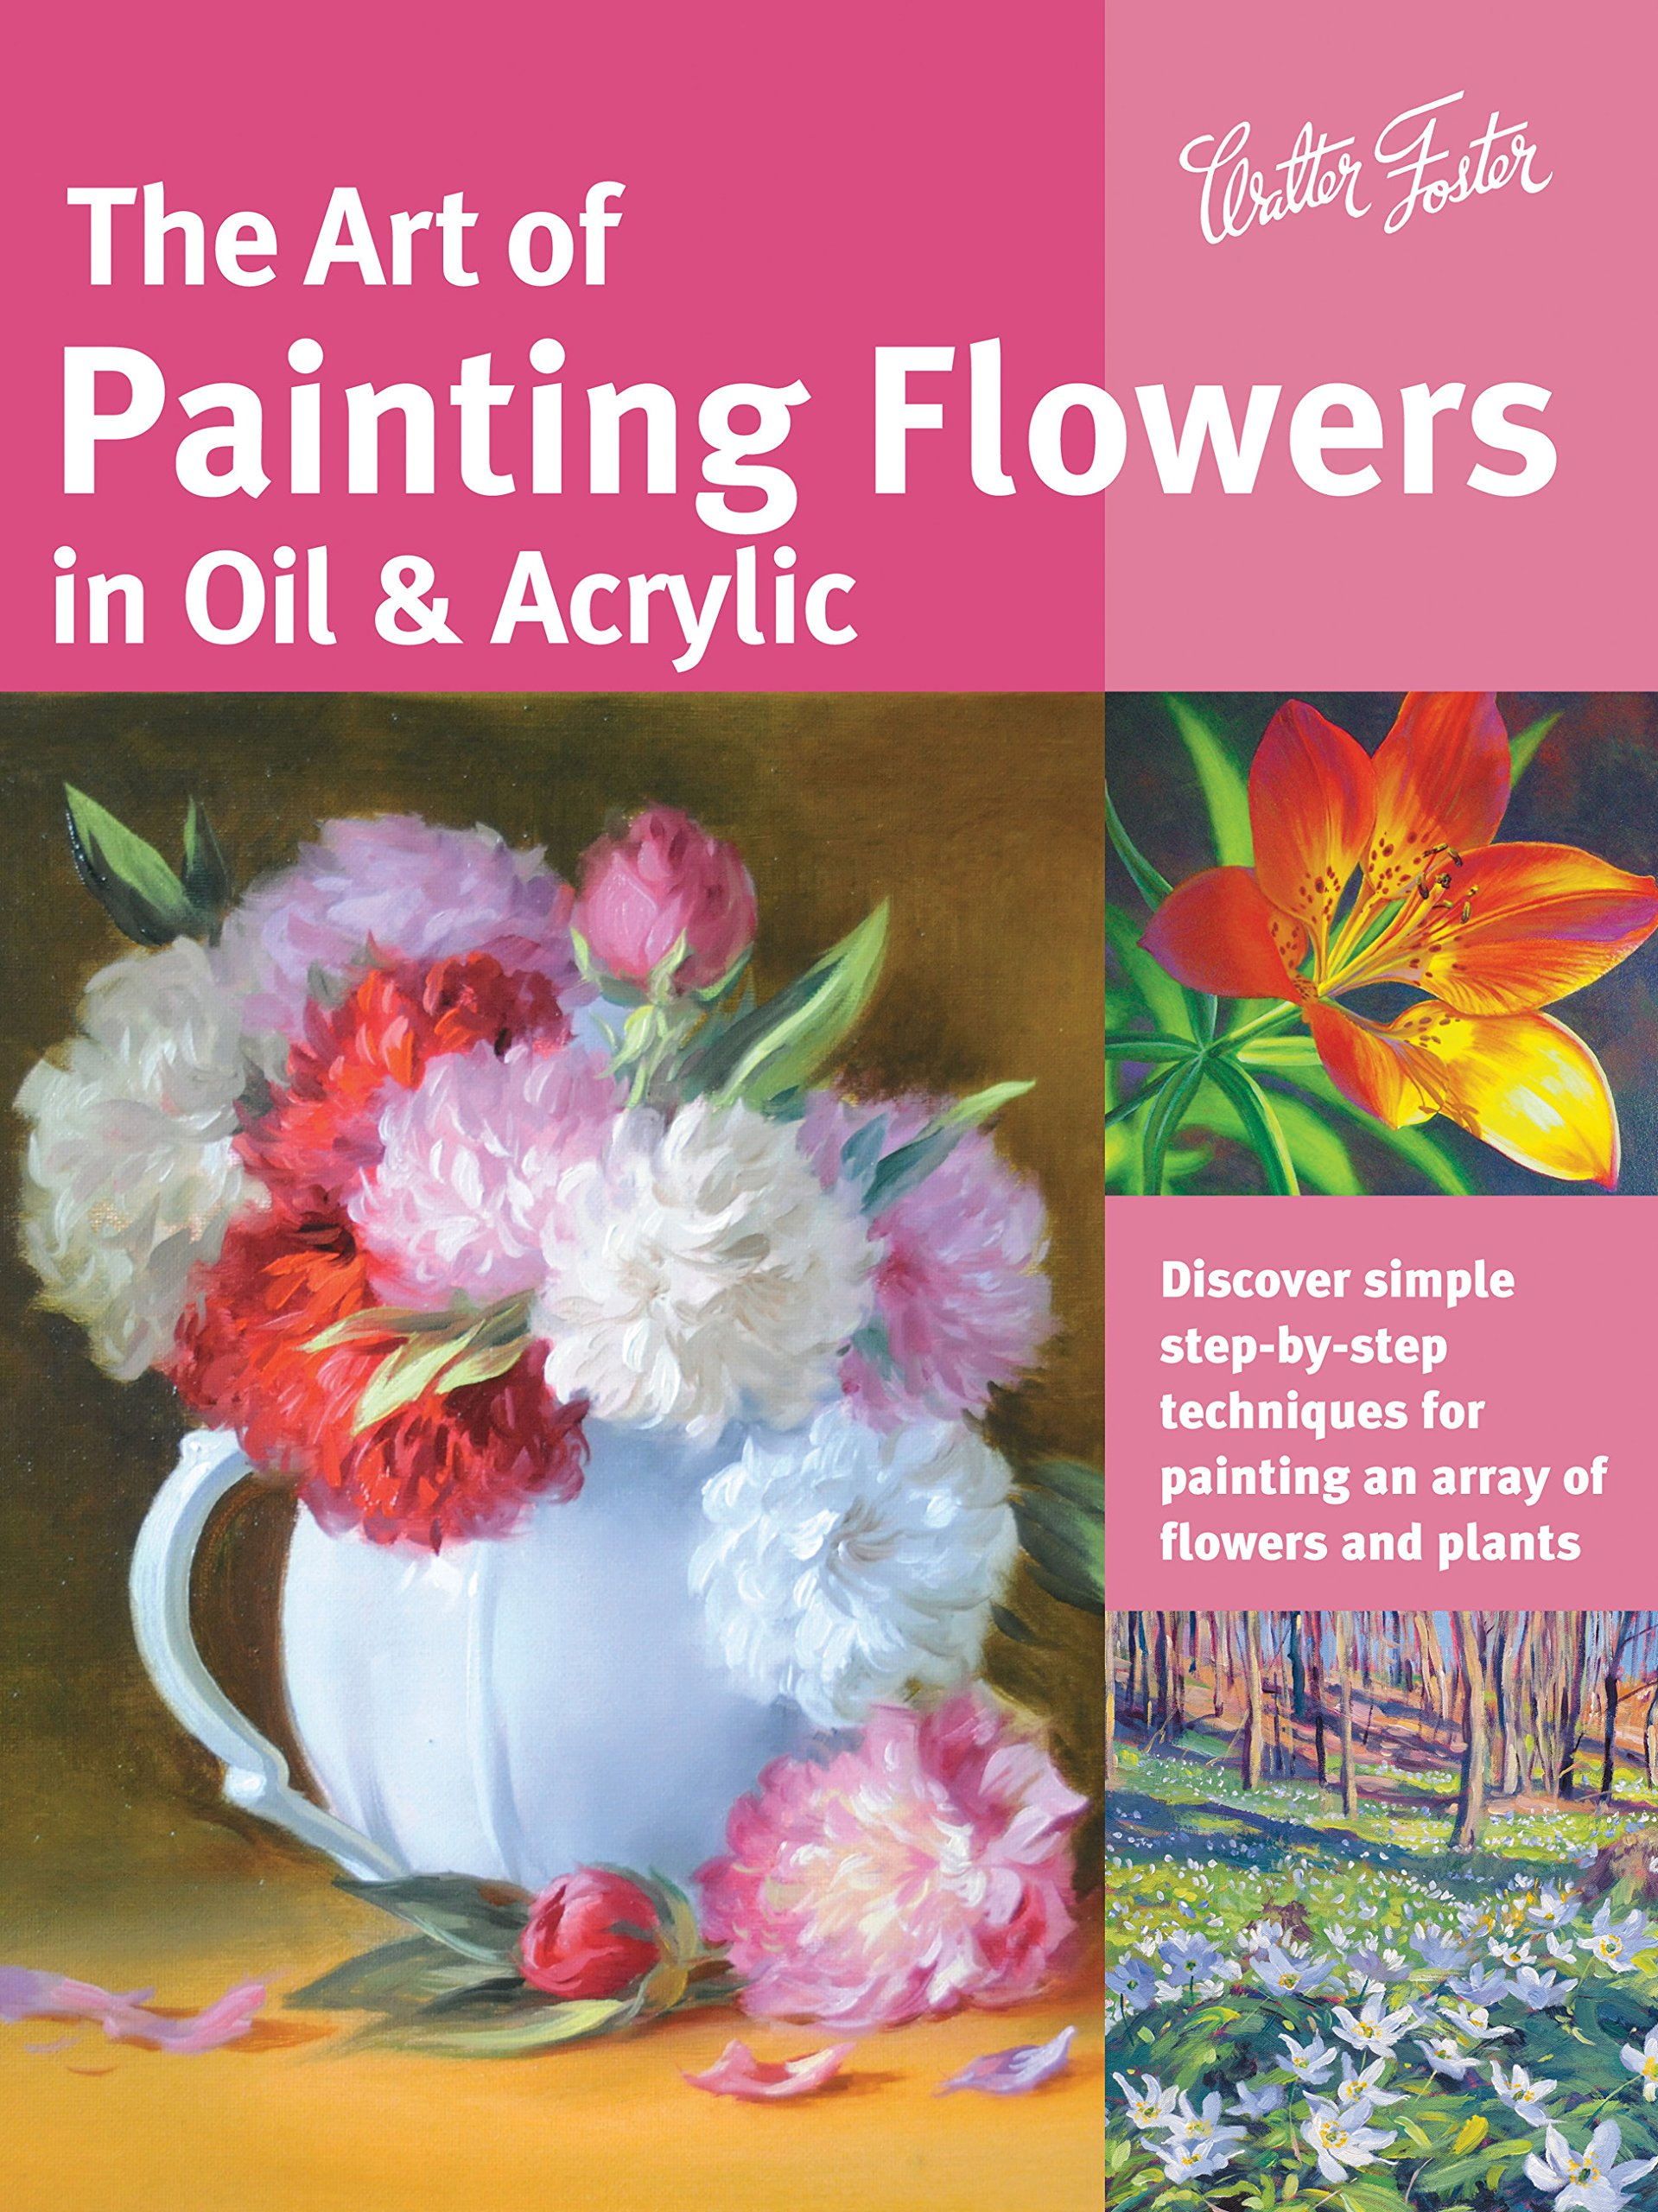 Download The Art of Painting Flowers in Oil & Acrylic: Discover simple step-by-step techniques for painting an array of flowers and plants (Collector's Series) PDF